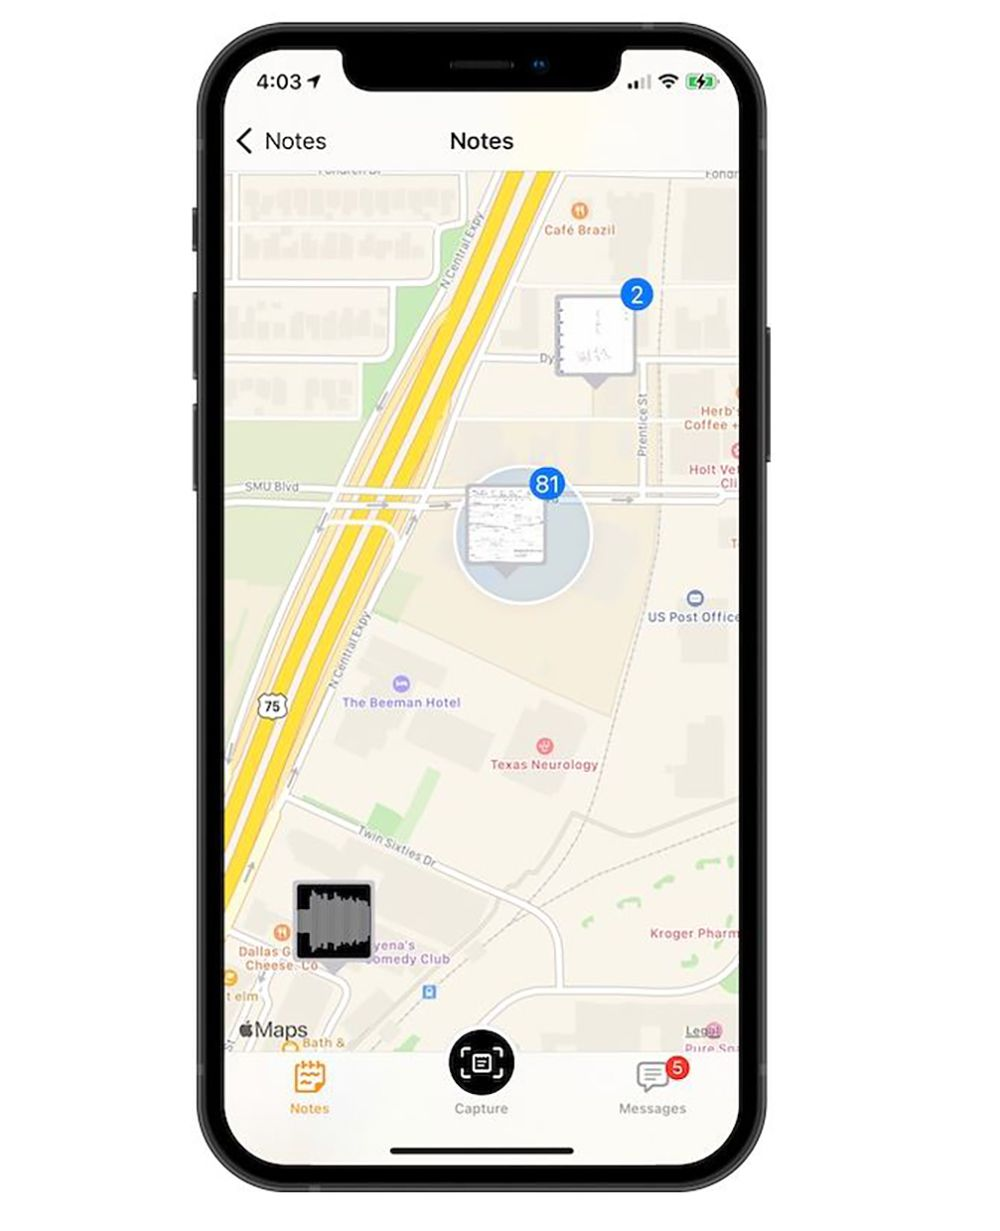 The Thinkers app can show the location where your notes were captured.